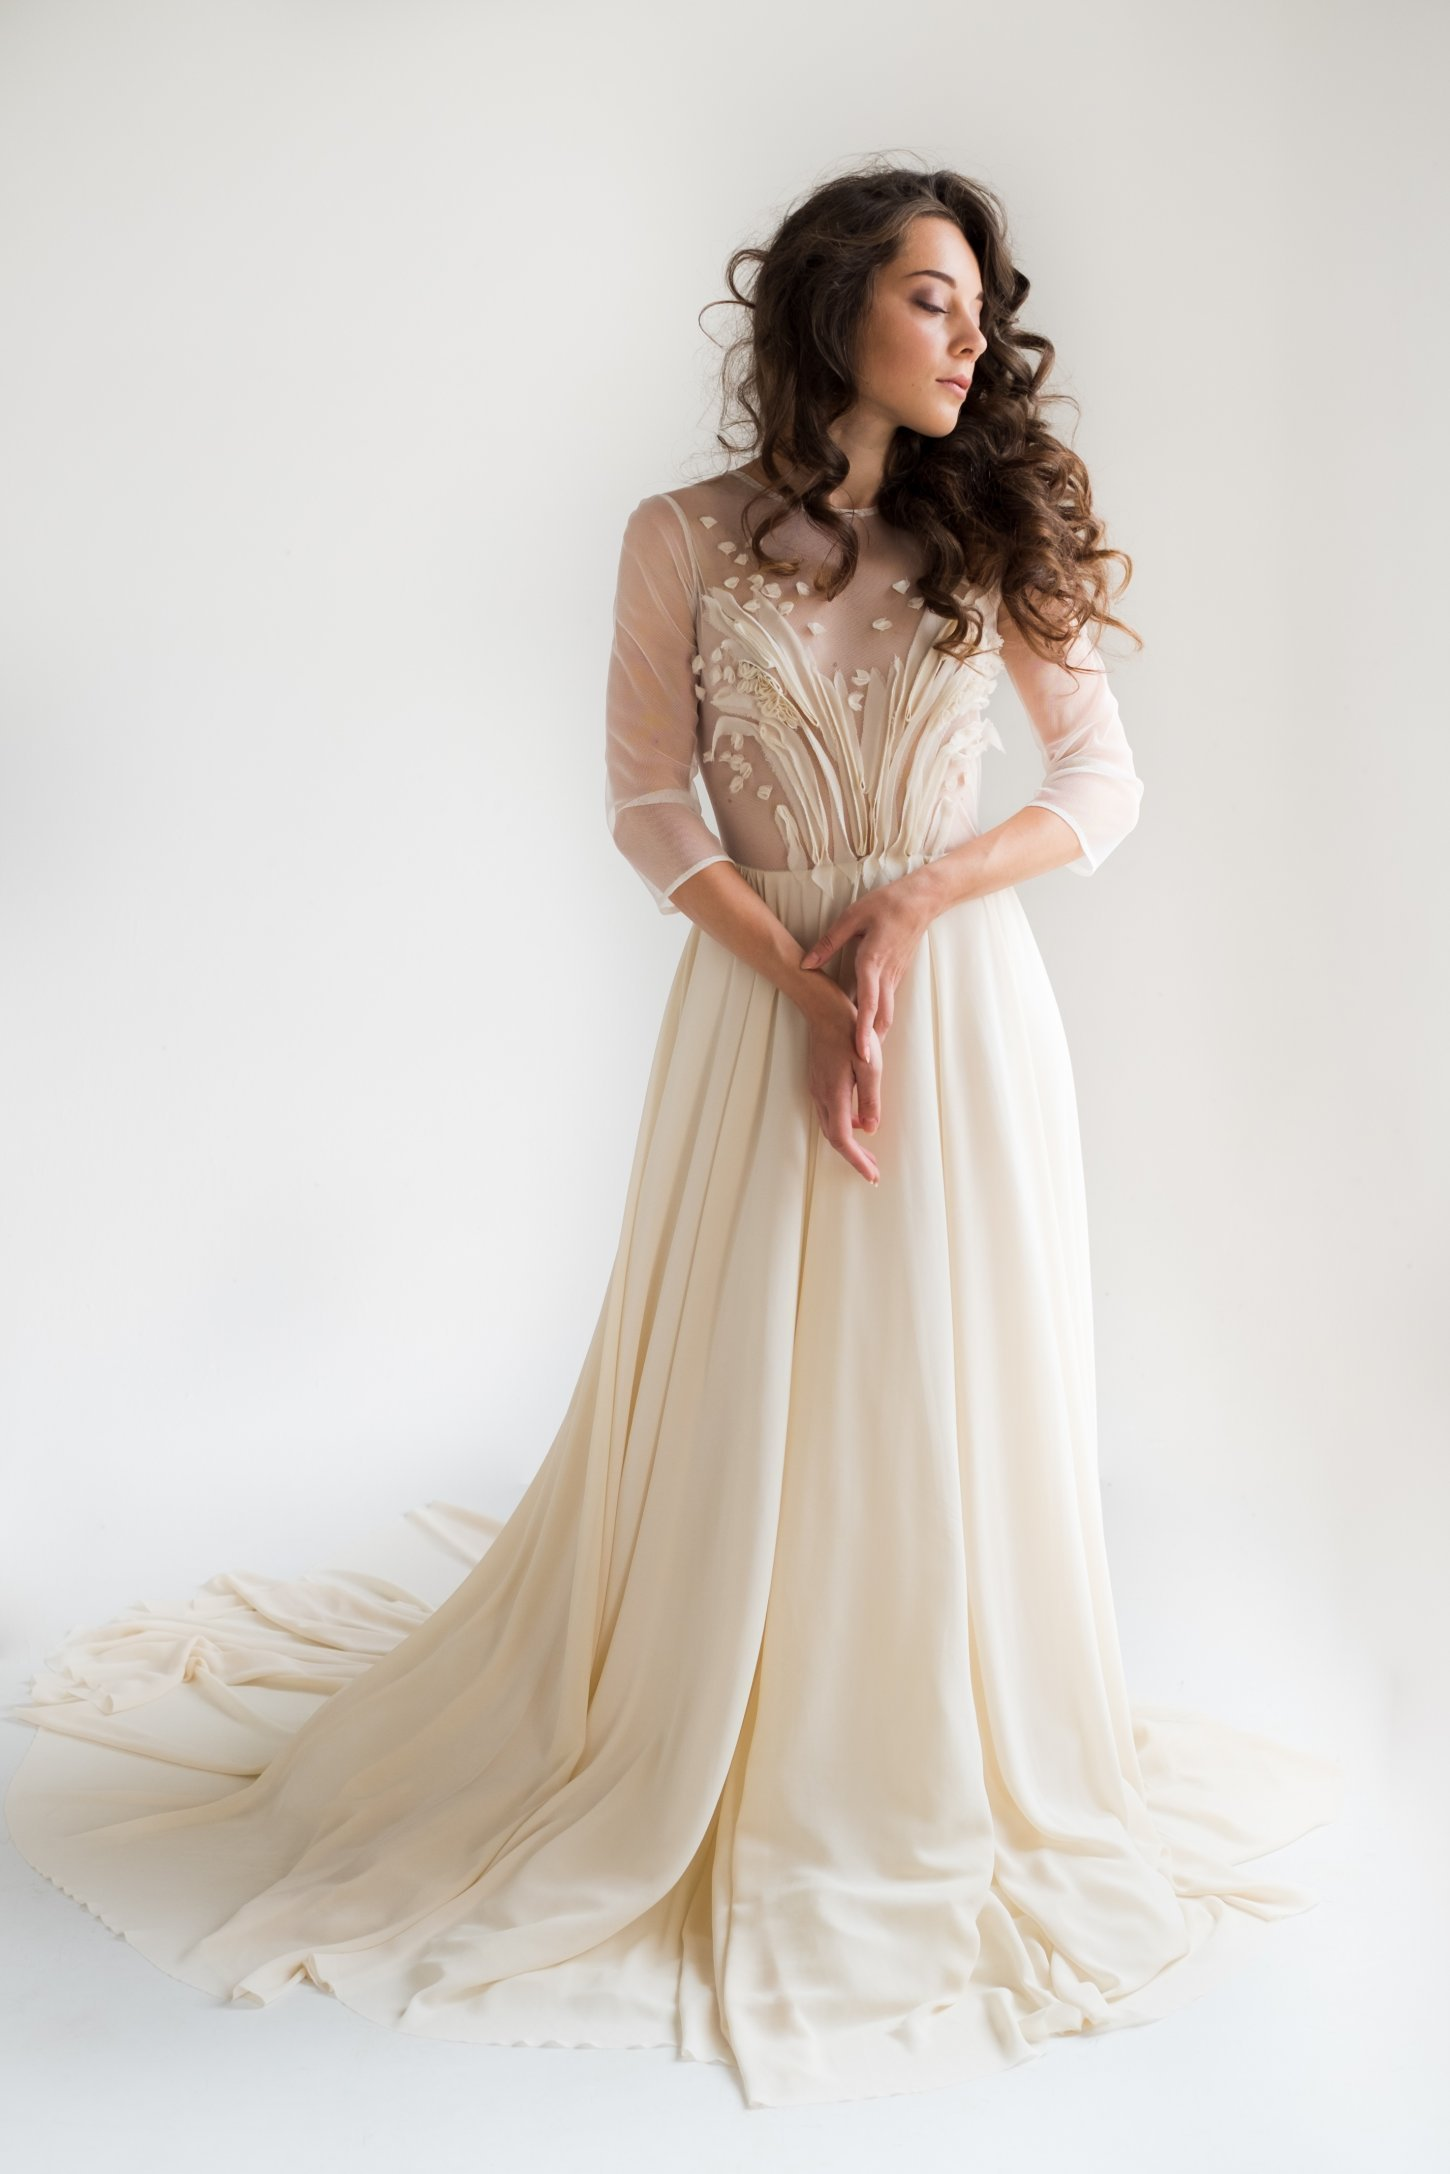 sheer wedding dress with